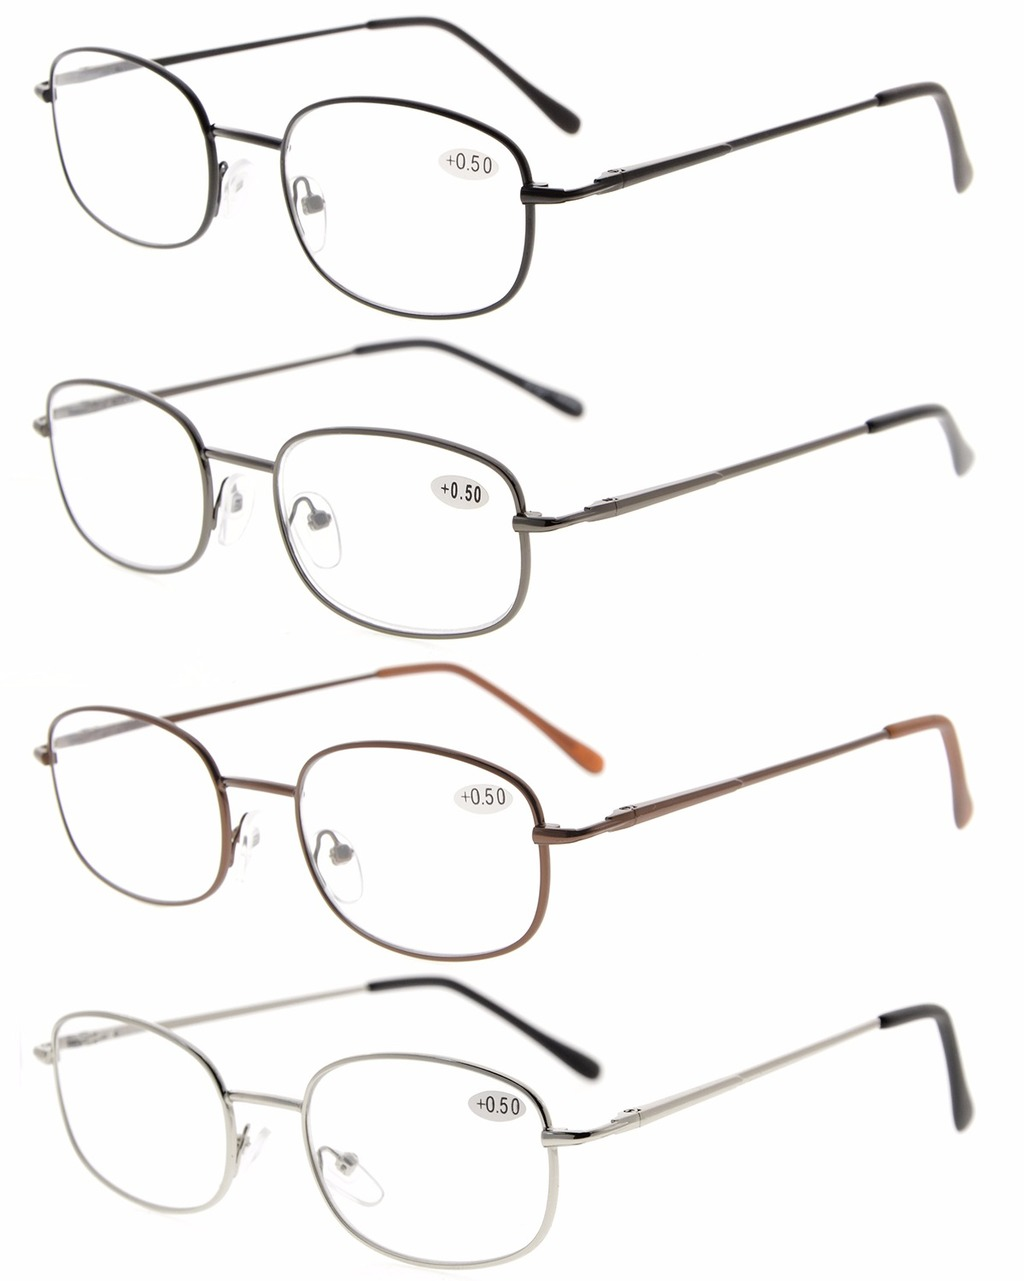 44092502b54 Eyekepper Metal Frame Spring Hinged Arms Reading Glasses Pack Of 4